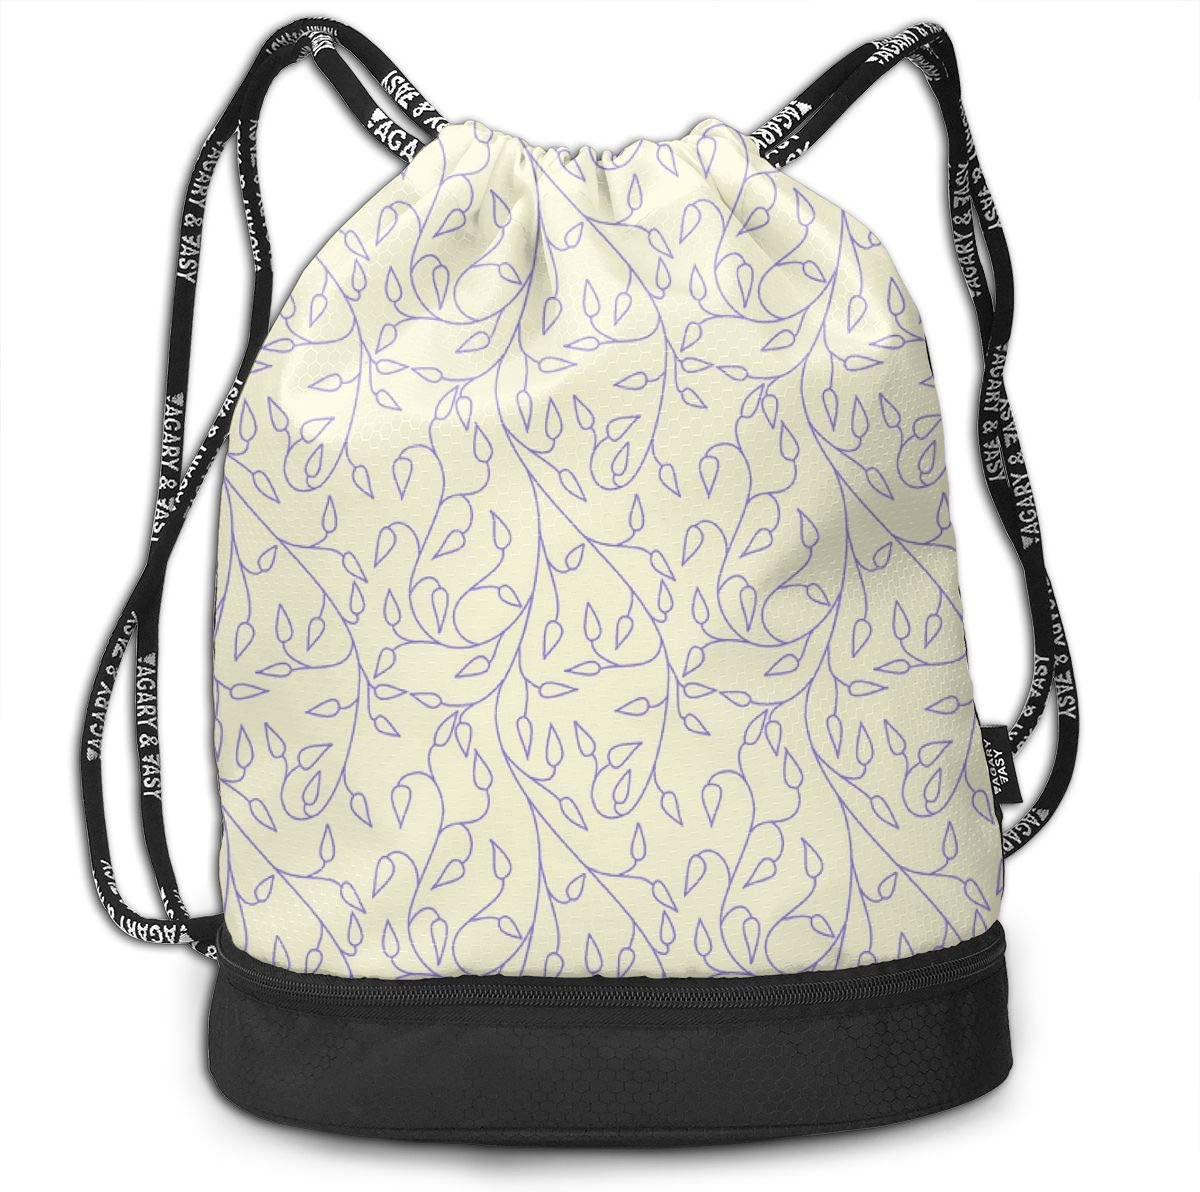 Vll Periwinkle Vines Ed Drawstring Backpack Sports Athletic Gym Cinch Sack String Storage Bags for Hiking Travel Beach